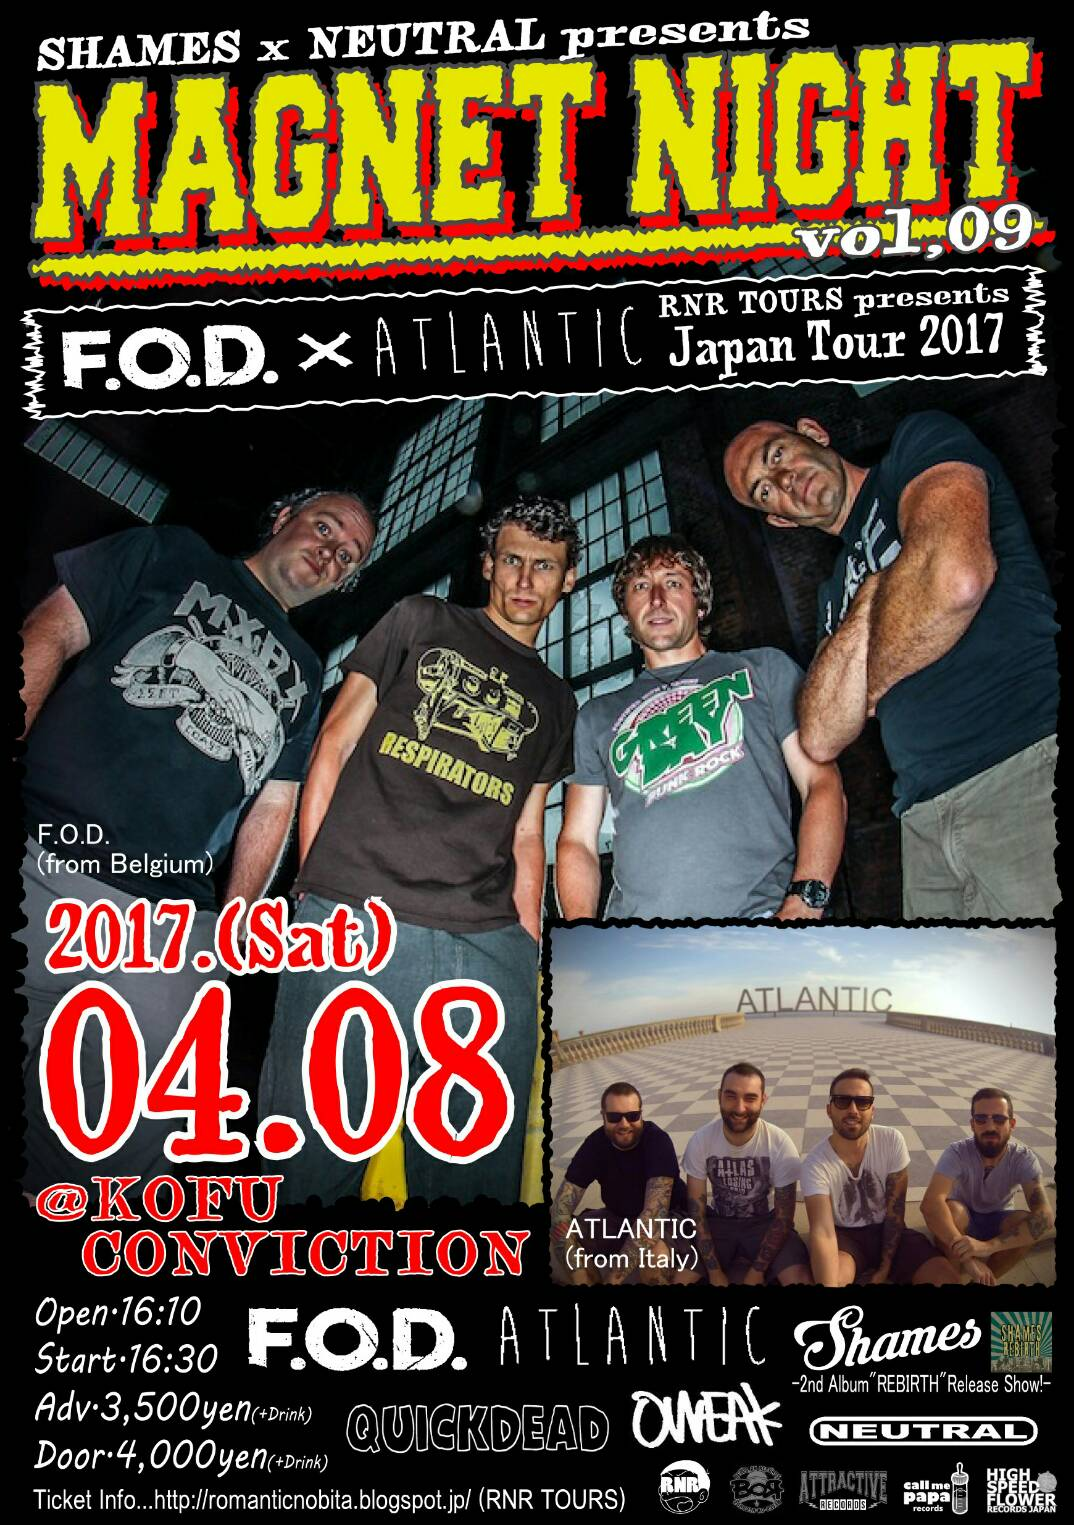 MAGNET NIGHT vol.9 F.O.D. & ATLANTIC JAPAN TOUR 2017